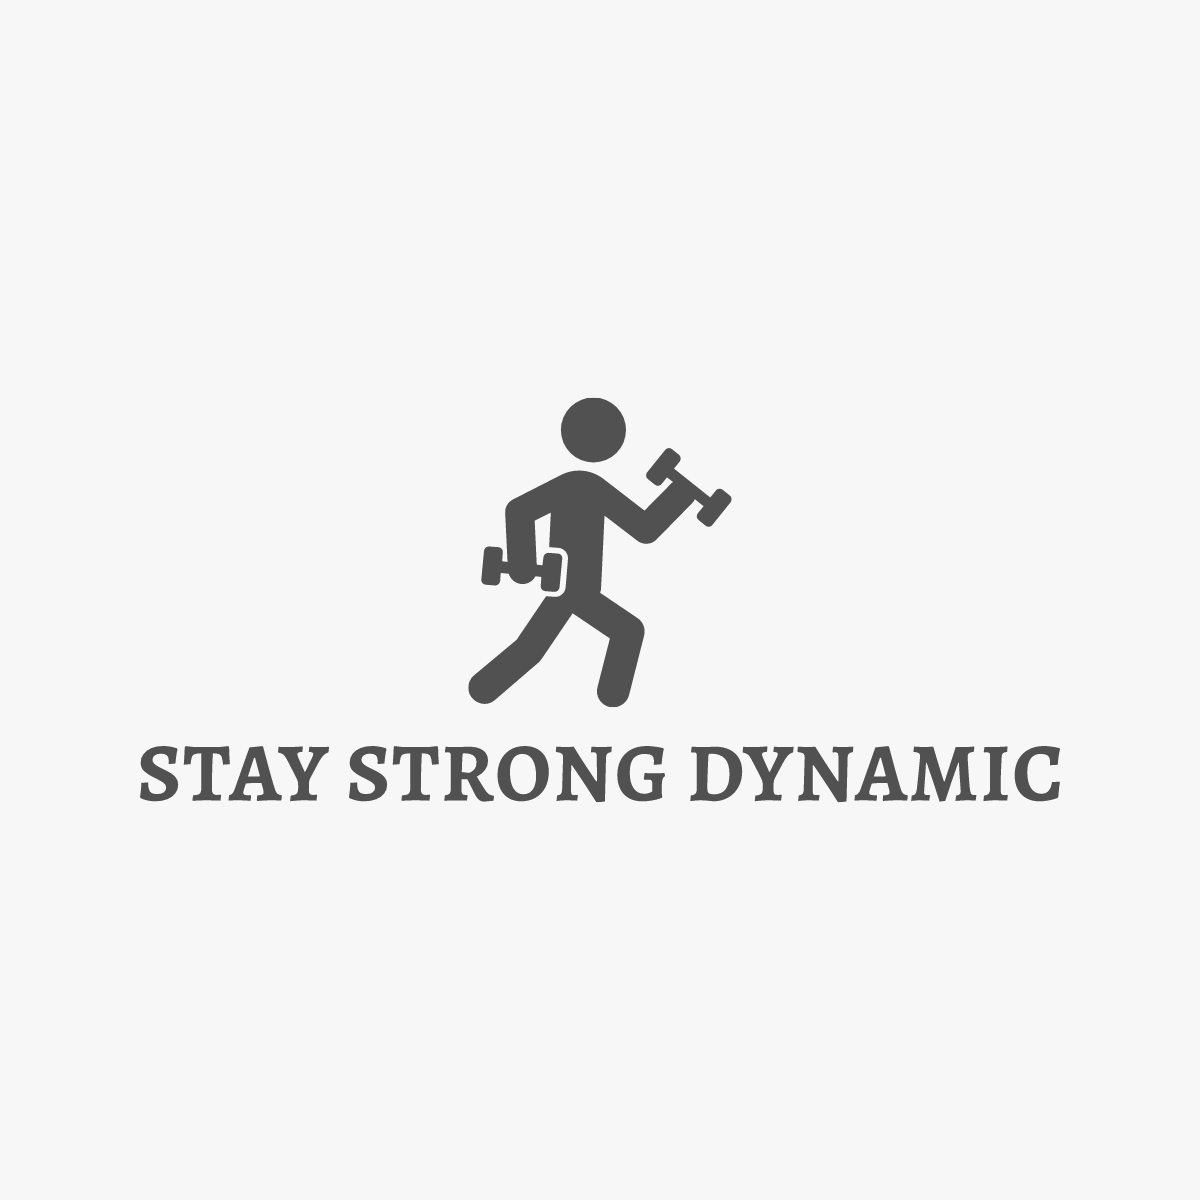 https://www.mncjobs.de/company/stay-strong-dynamic